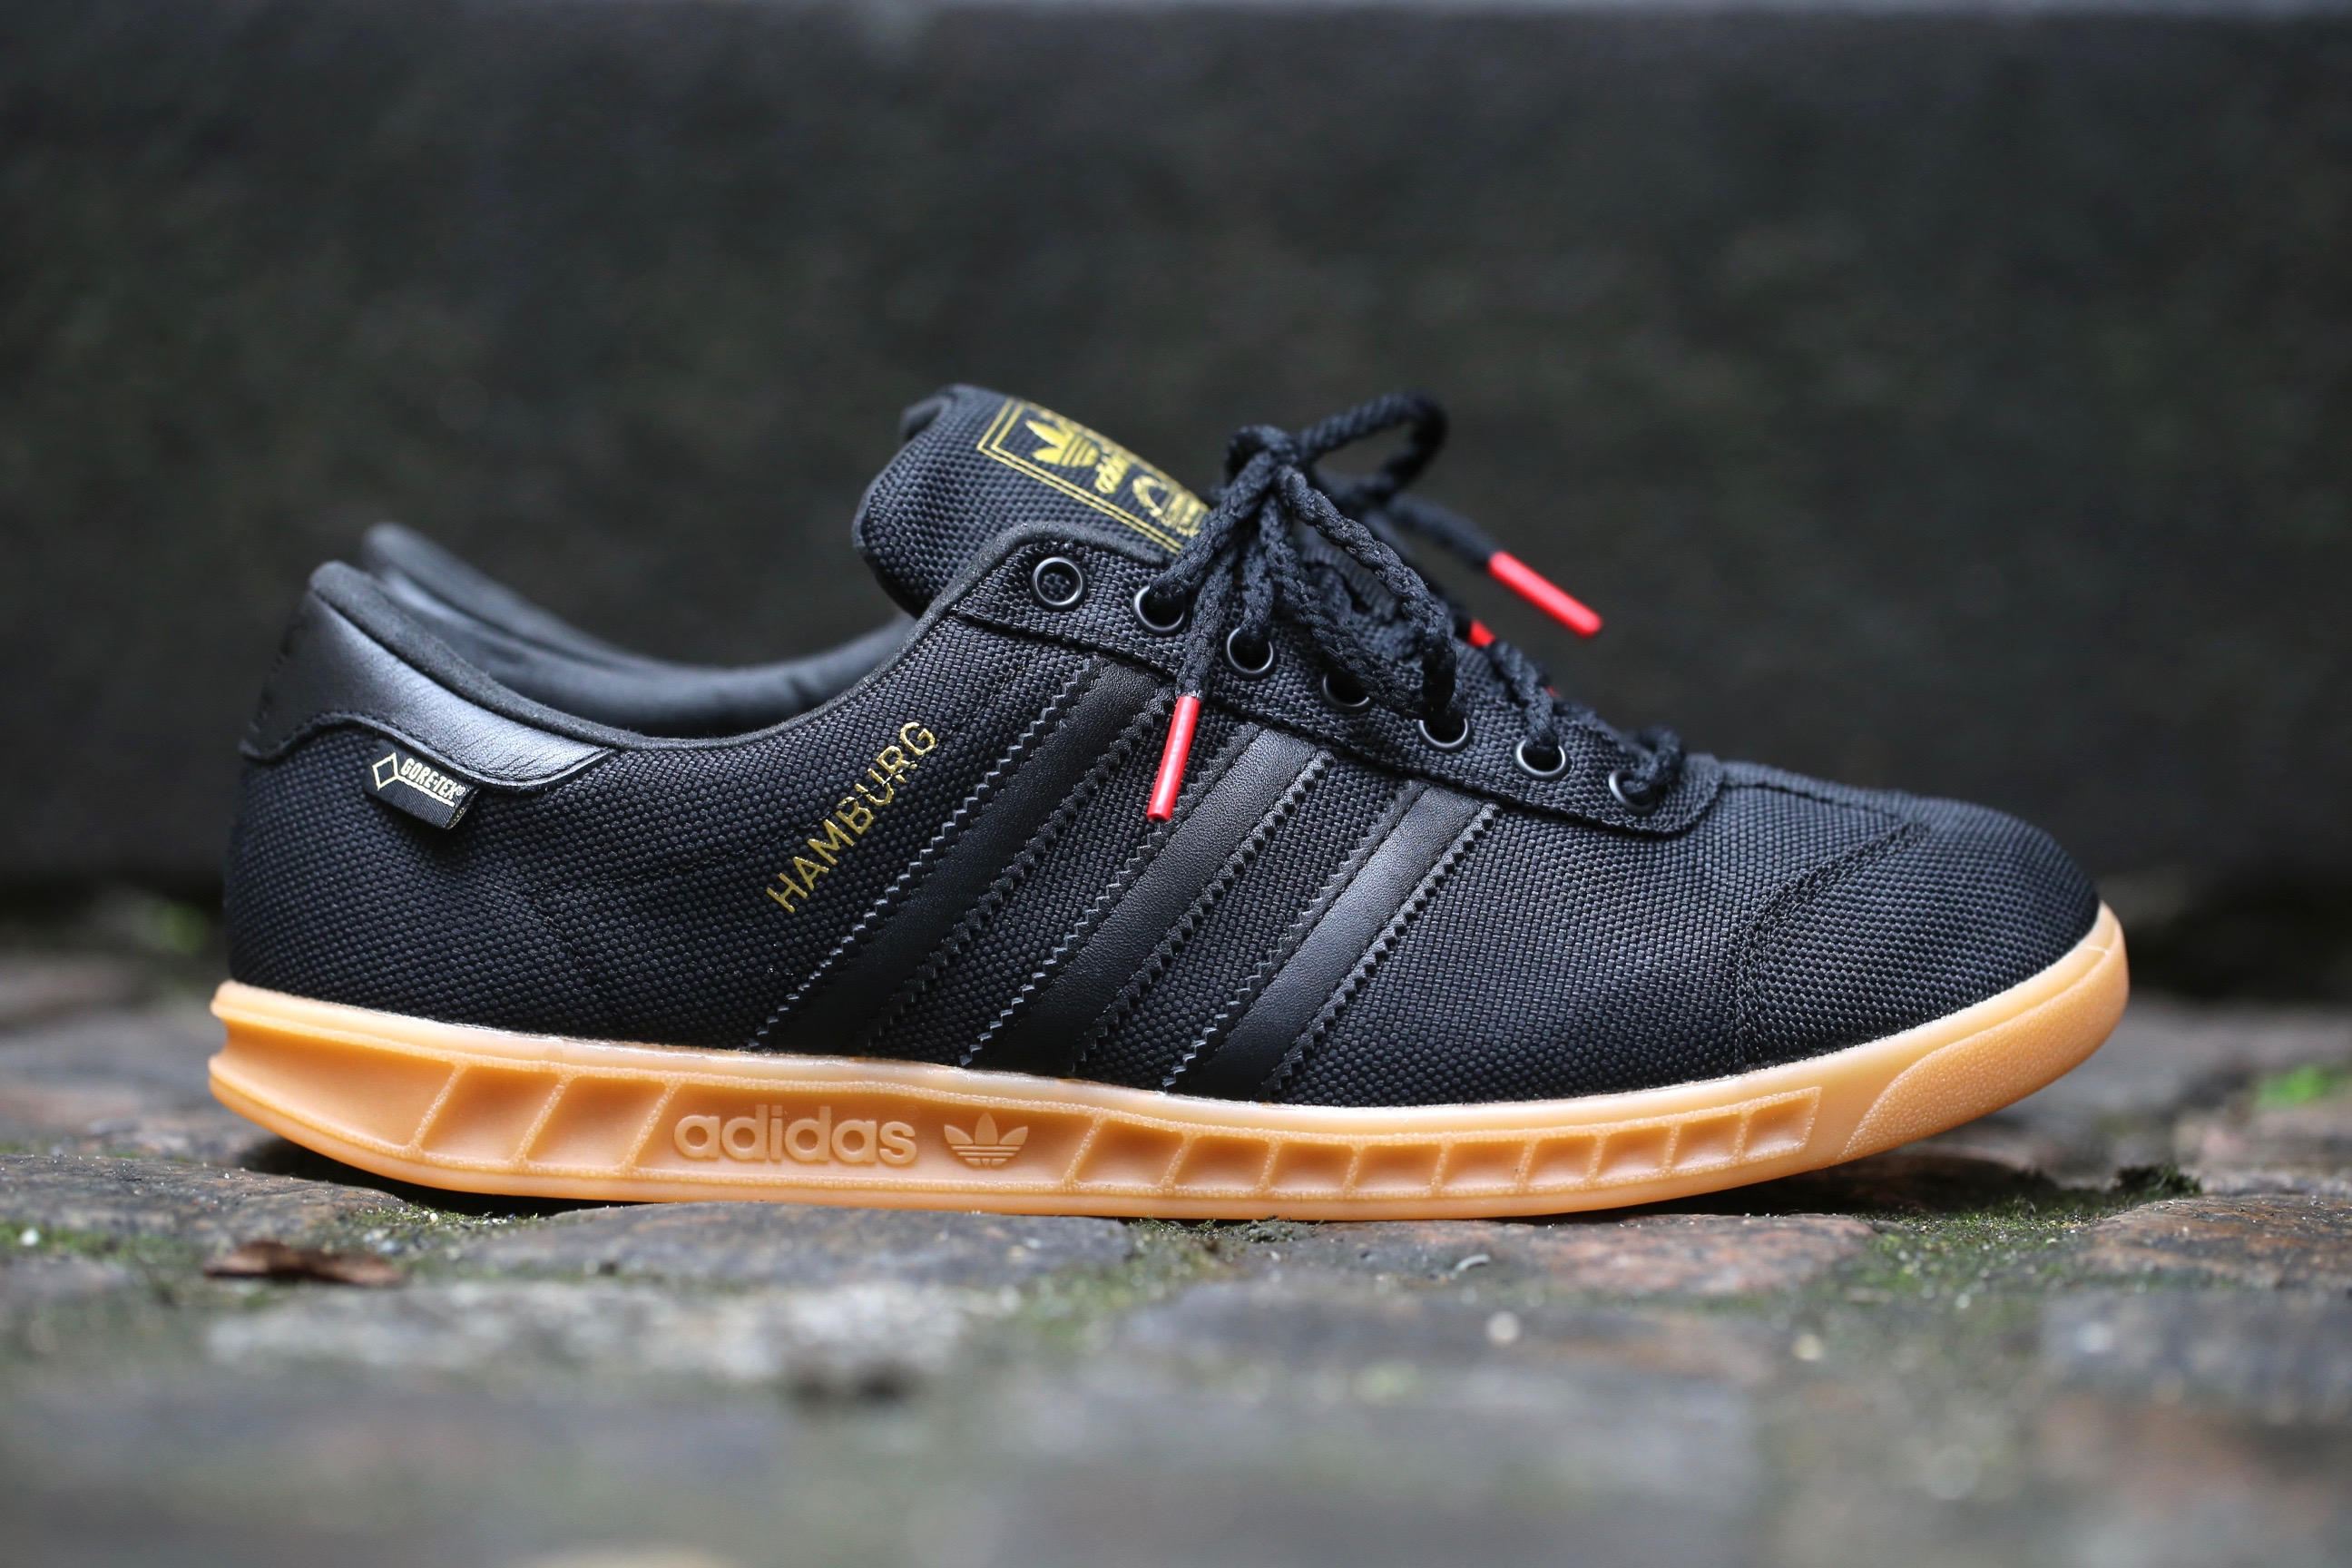 Adidas Hamburg Gtx Shoes